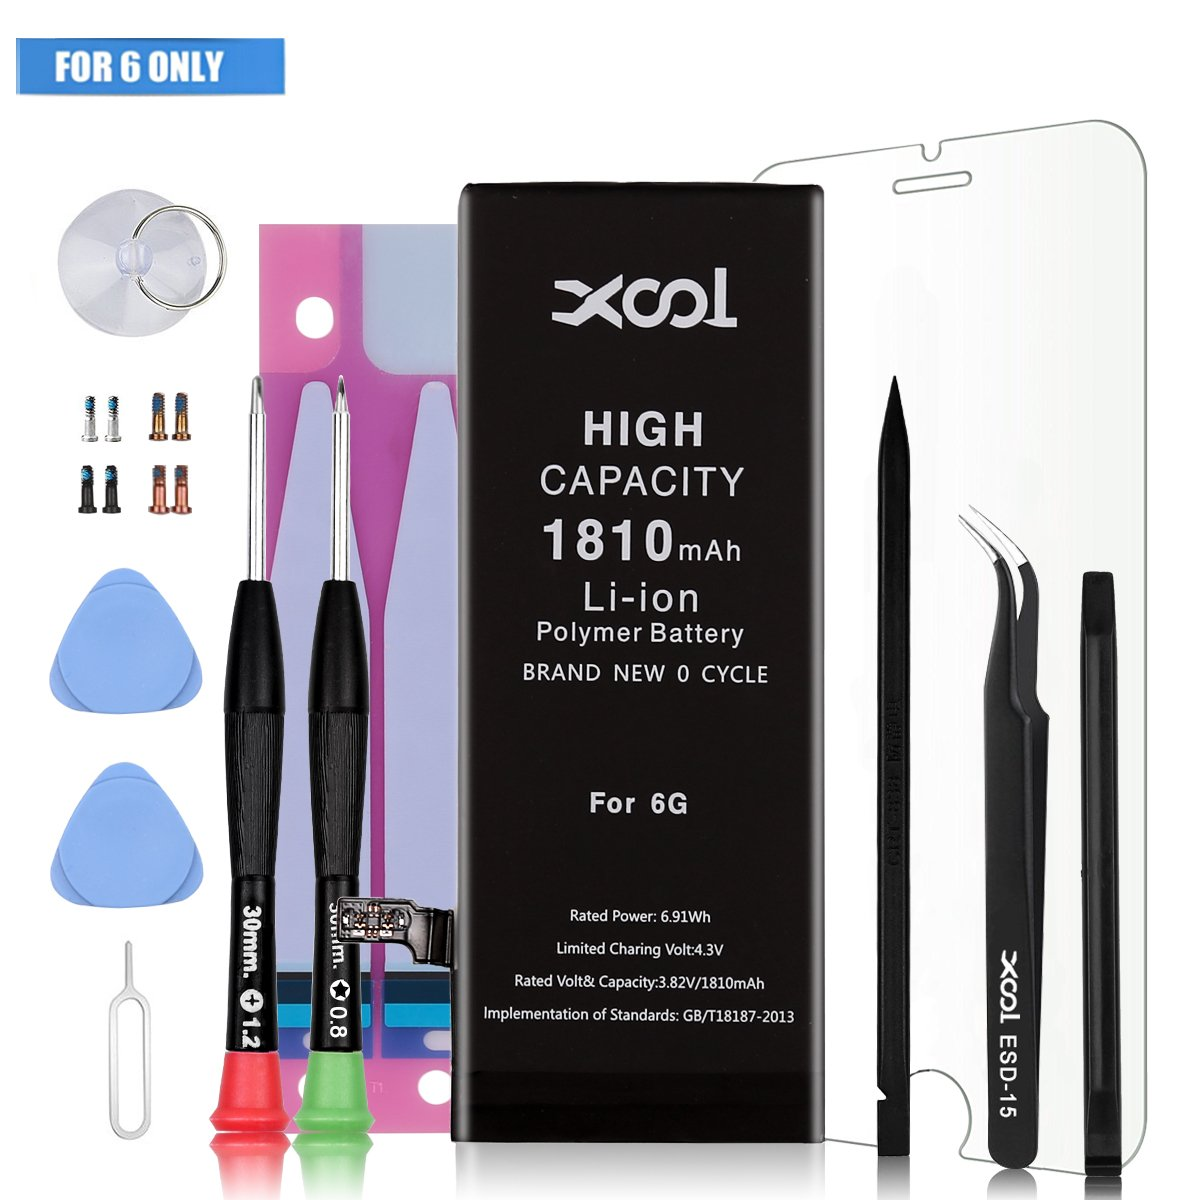 Battery Model IP 6 0 Cycle for IP 6 Battery Replacement with Complete Repair Tool Kits, Instruction, Adhesive Strip and Screen Protector High Capacity Li-ion Battery with 24 Month Warranty by XOOL (Image #1)